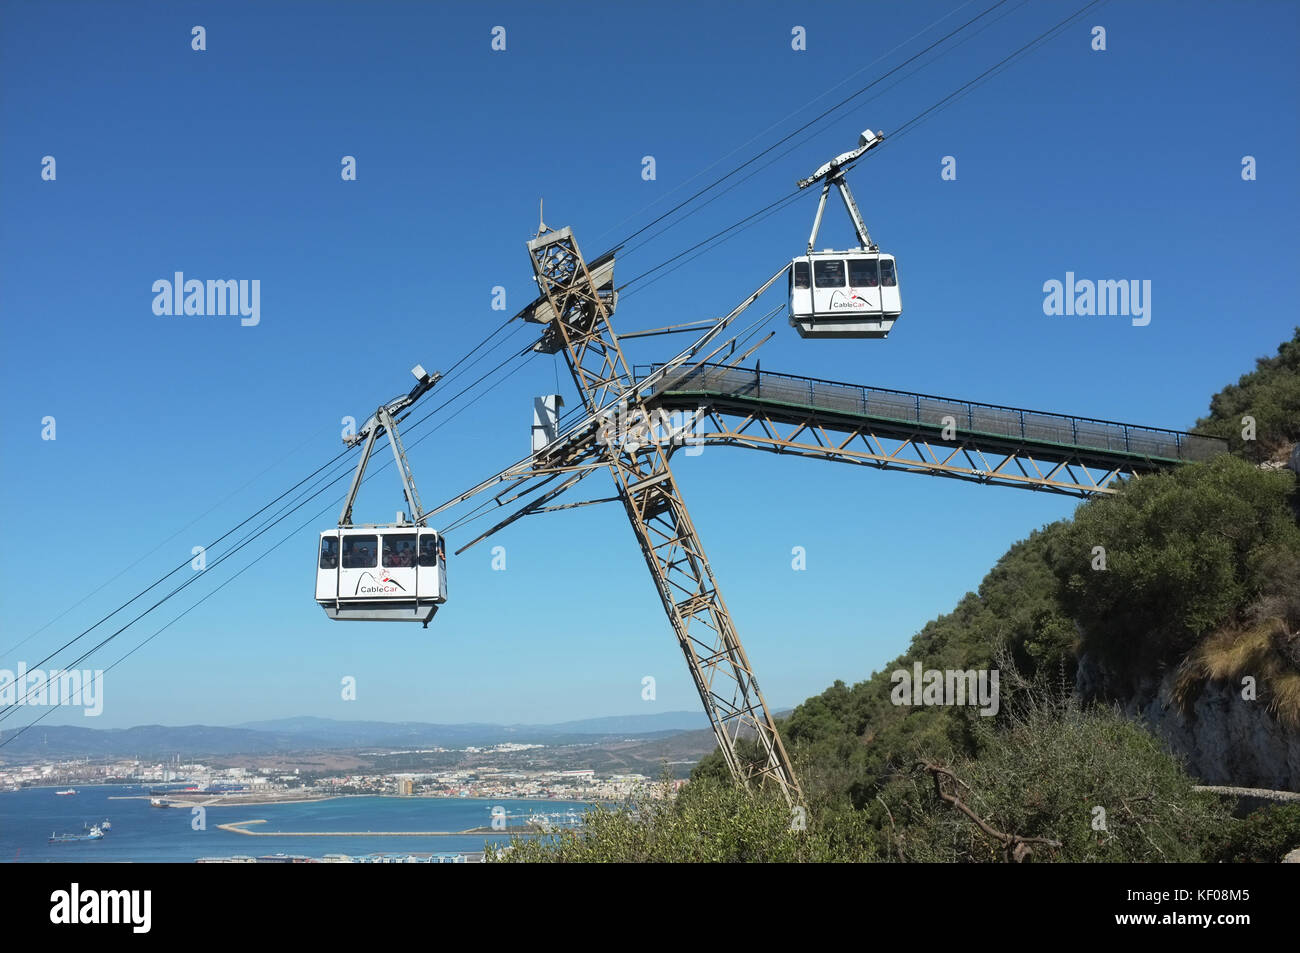 Cable car, Gibraltar, September 2017 - Stock Image